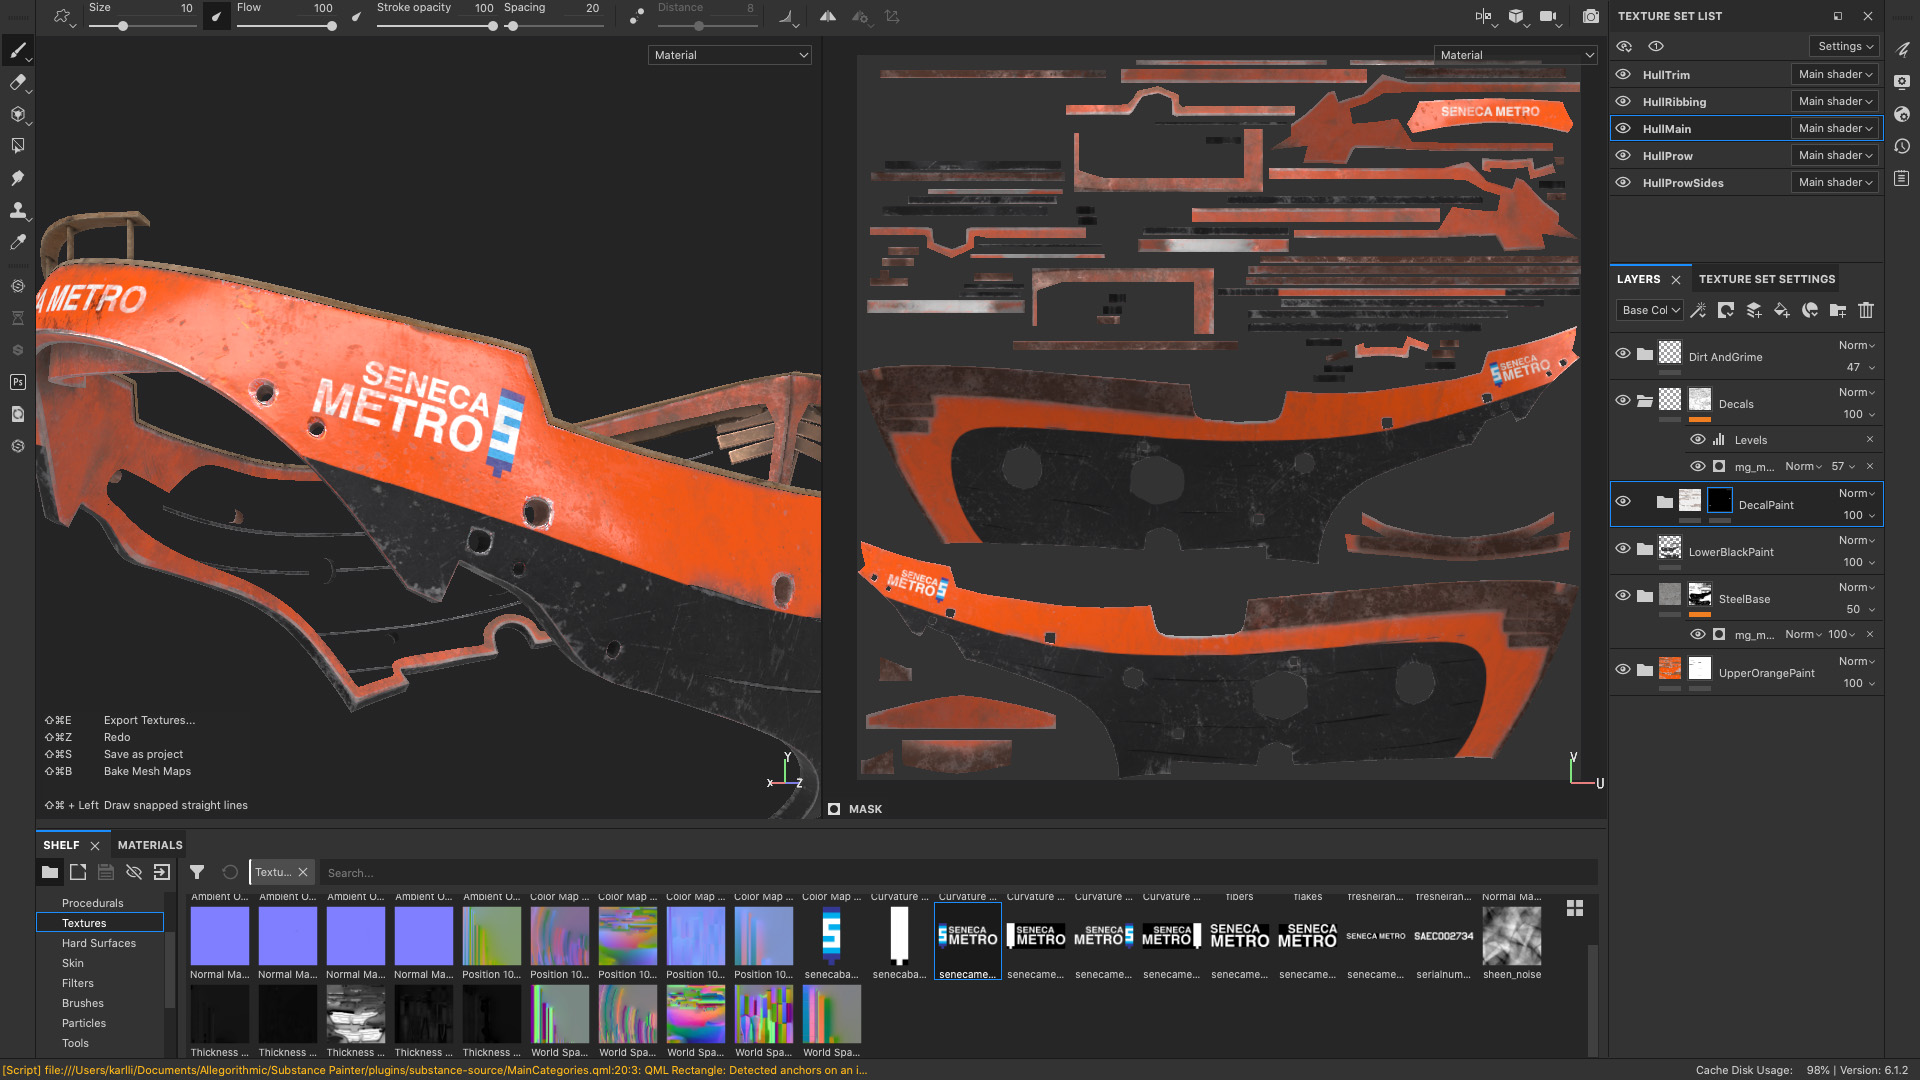 Figure 11: Texturing the main piece of the ship's hull in Substance Painter.